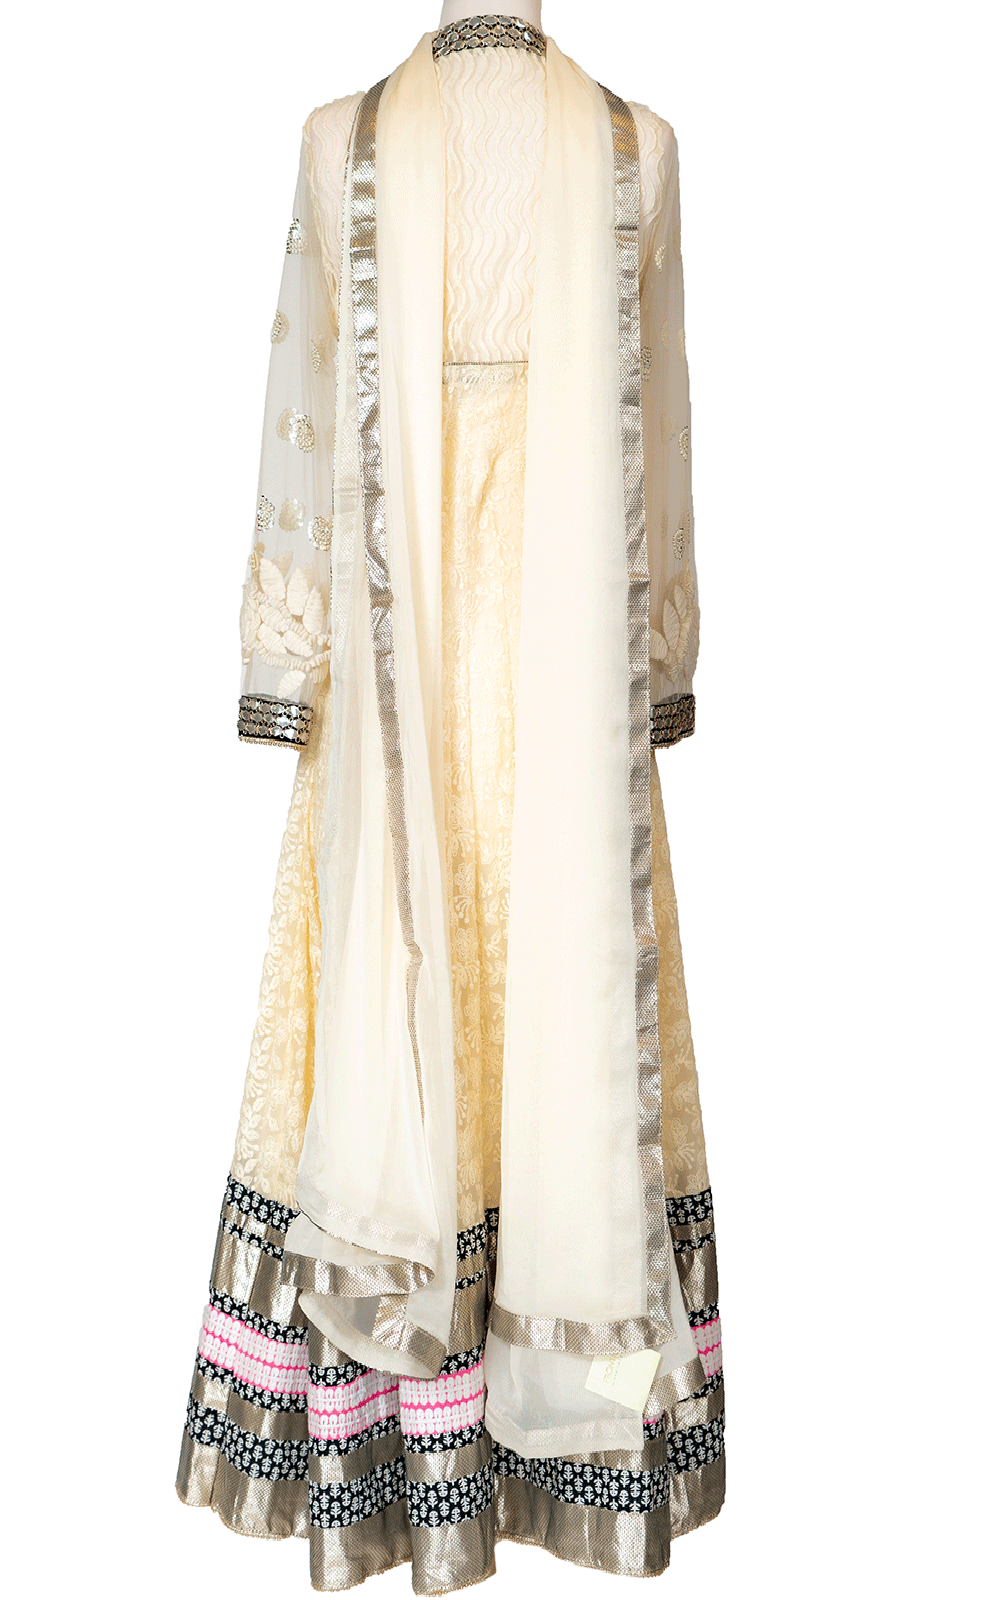 Off White Thread Anarkali with Black Border